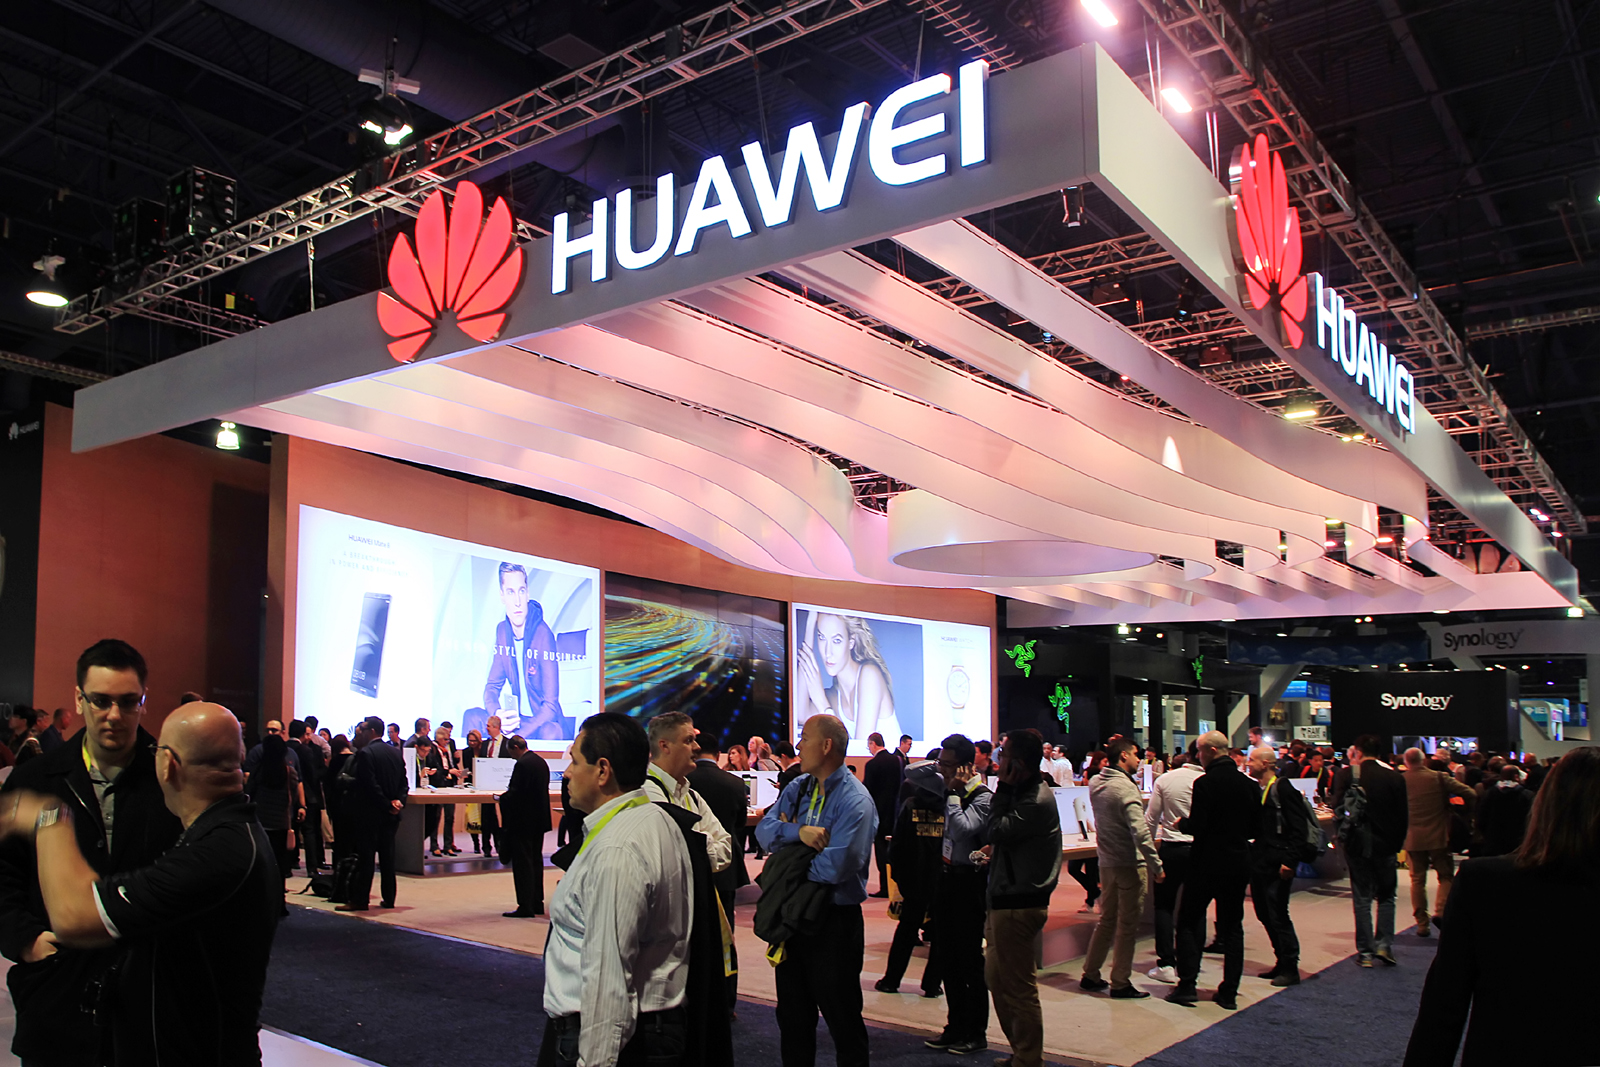 Huawei and IS creating visual experience together